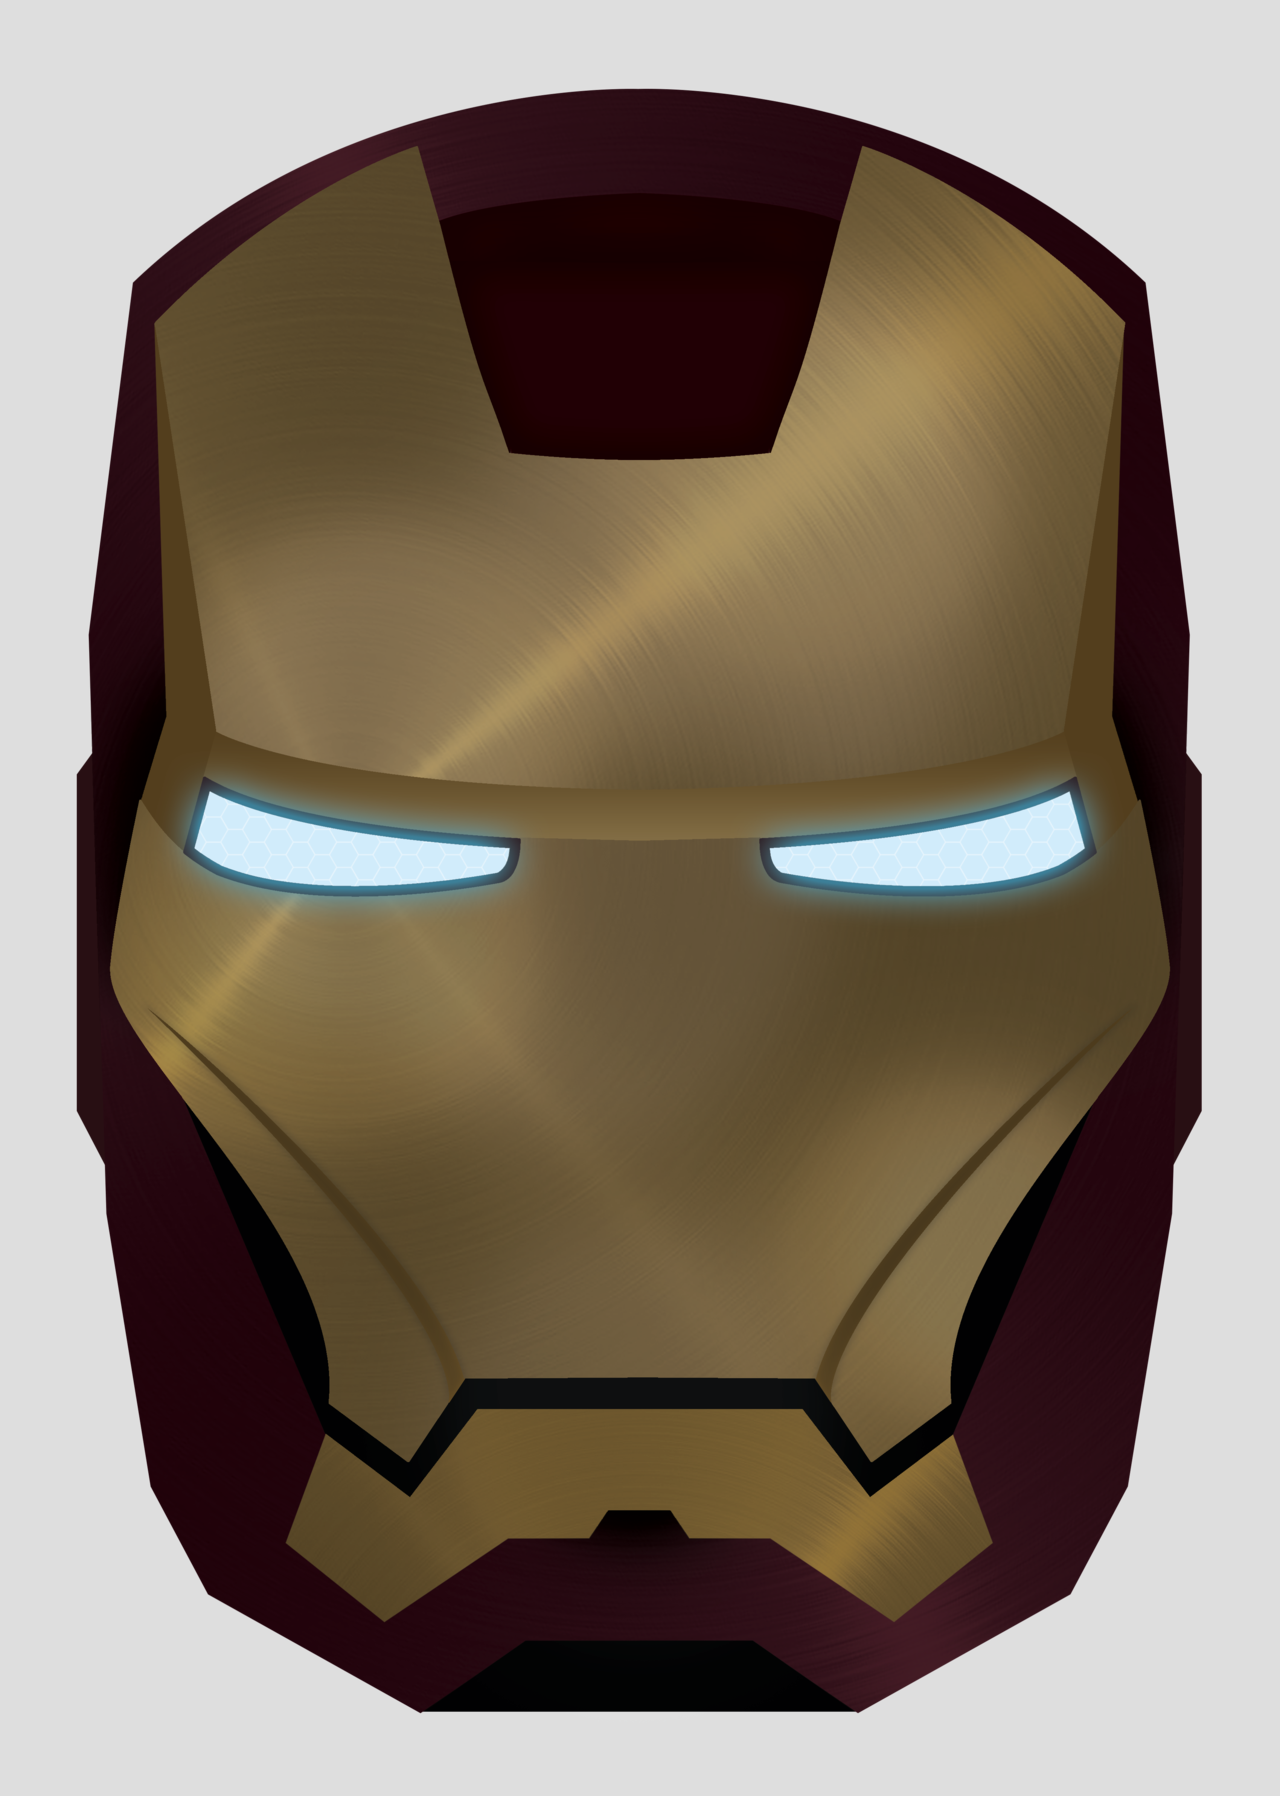 Iron Man Mask Drawing At Getdrawings Free For Personal Use